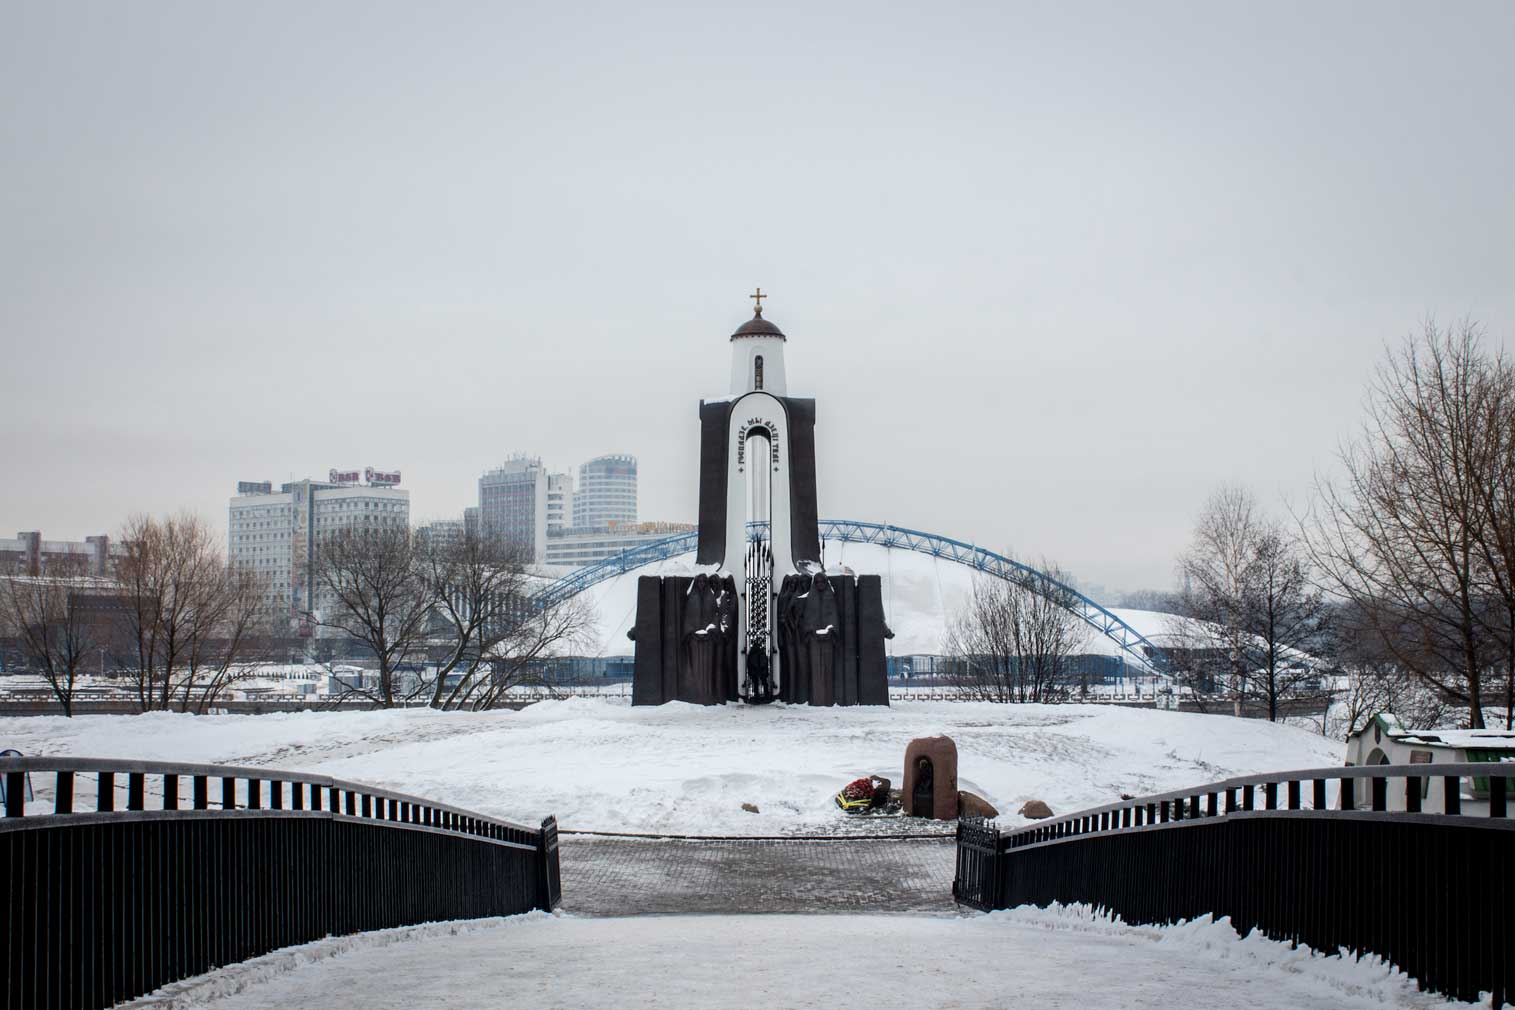 Soviet Modernism in Minsk